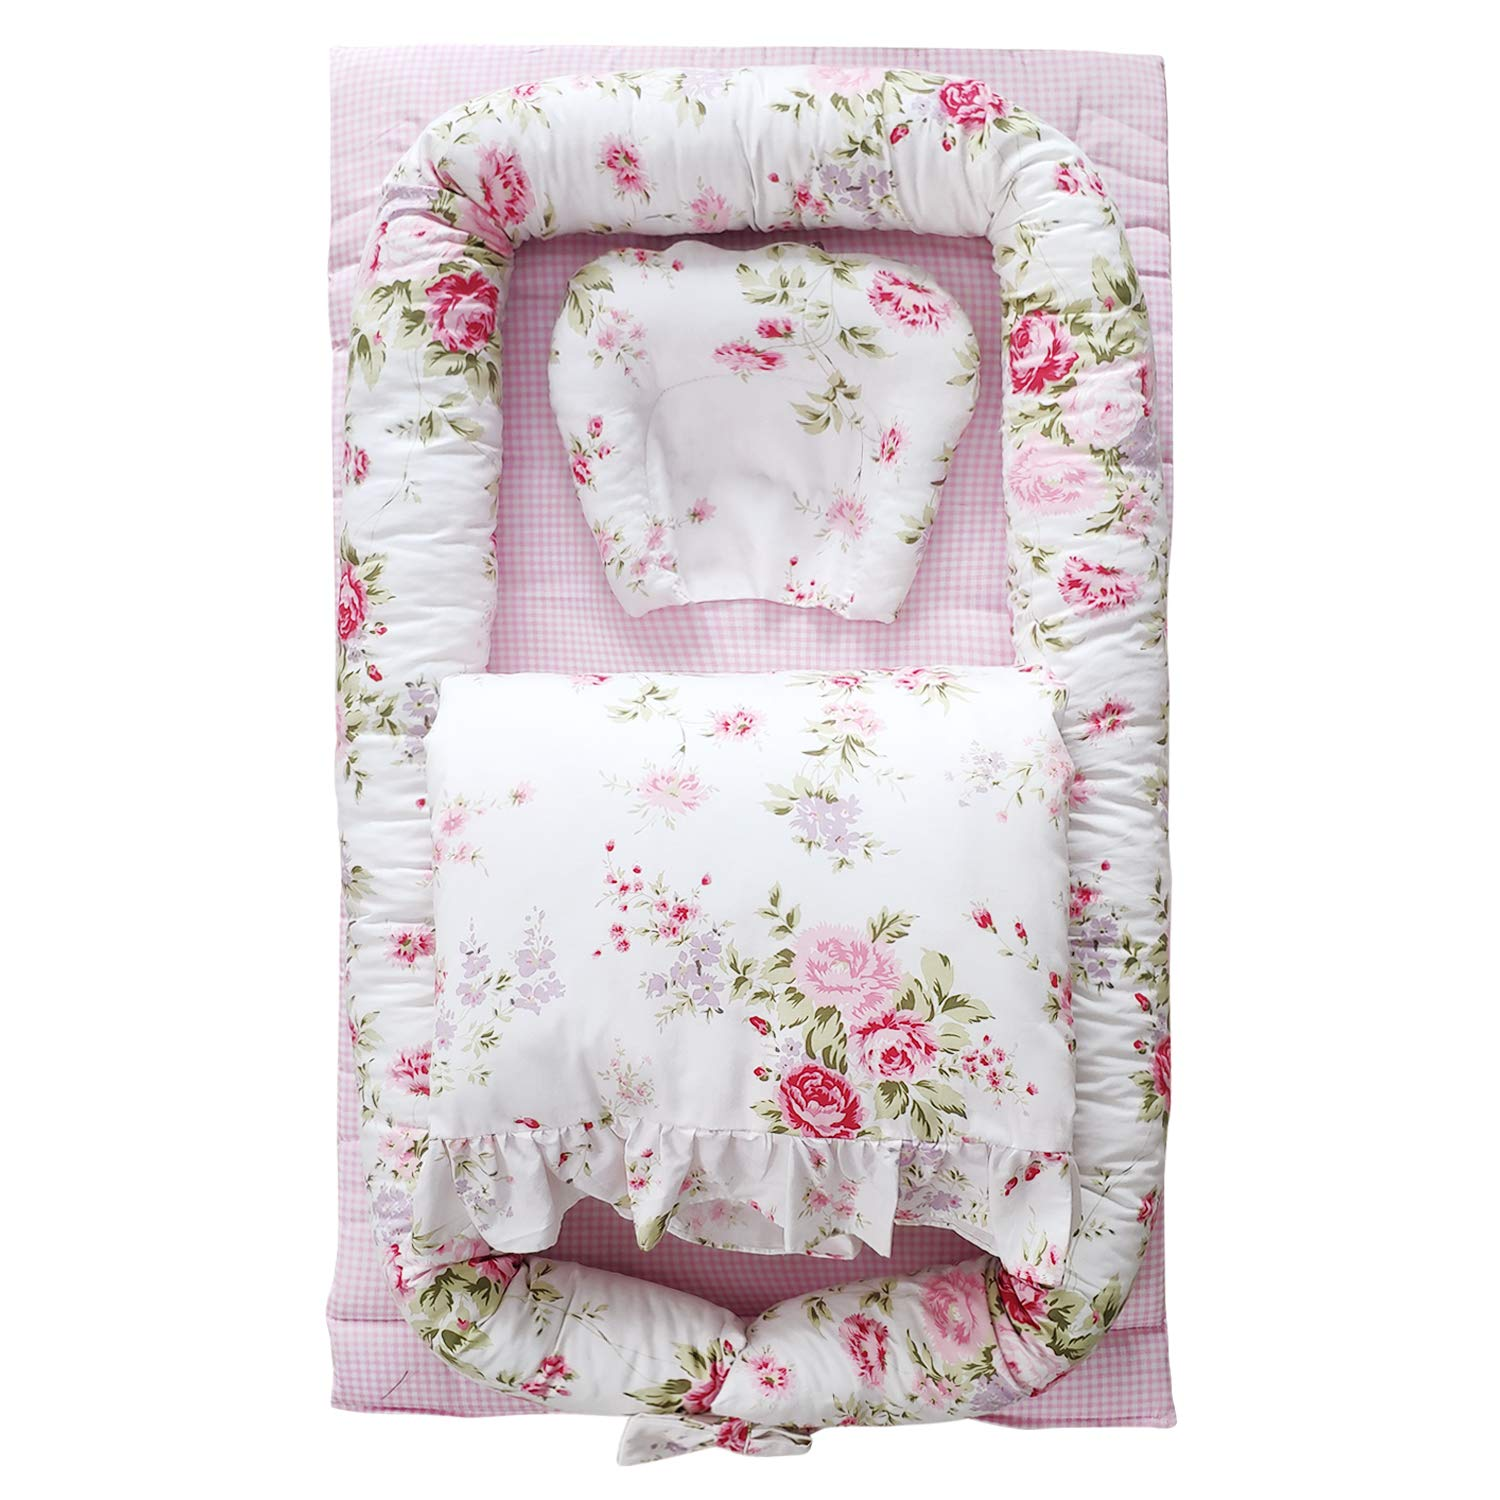 Abreeze Baby Bassinet for Bed -Rose Floral Plaid Baby Lounger Including Comforter- Breathable & Hypoallergenic Co-Sleeping Baby Bed - 100% Cotton Portable Crib for Bedroom/Travel 0-24 Months by Abreeze